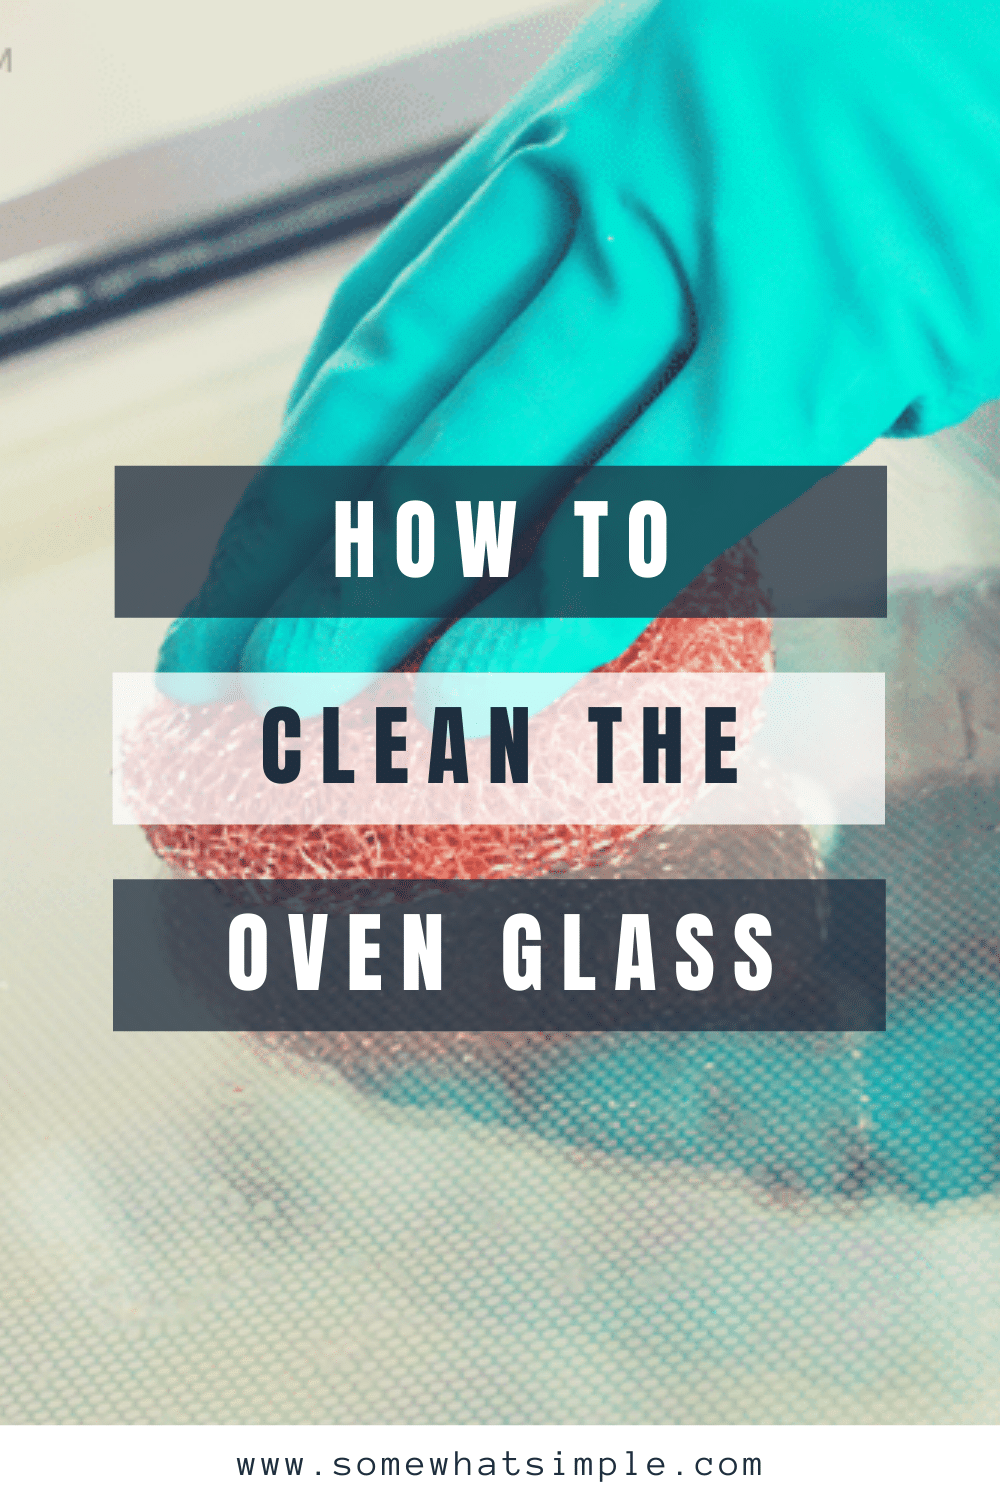 I'm going to show you two different way how to clean the oven glass door to get it looking like new again! These easy ways to clean your oven glass with get that stubborn, baked-on food off in no time! #cleaningtips #howtocleanovenglass #howtocleanovenglassdoor #howtocleananovenquickly #howtocleanovenwindow via @somewhatsimple